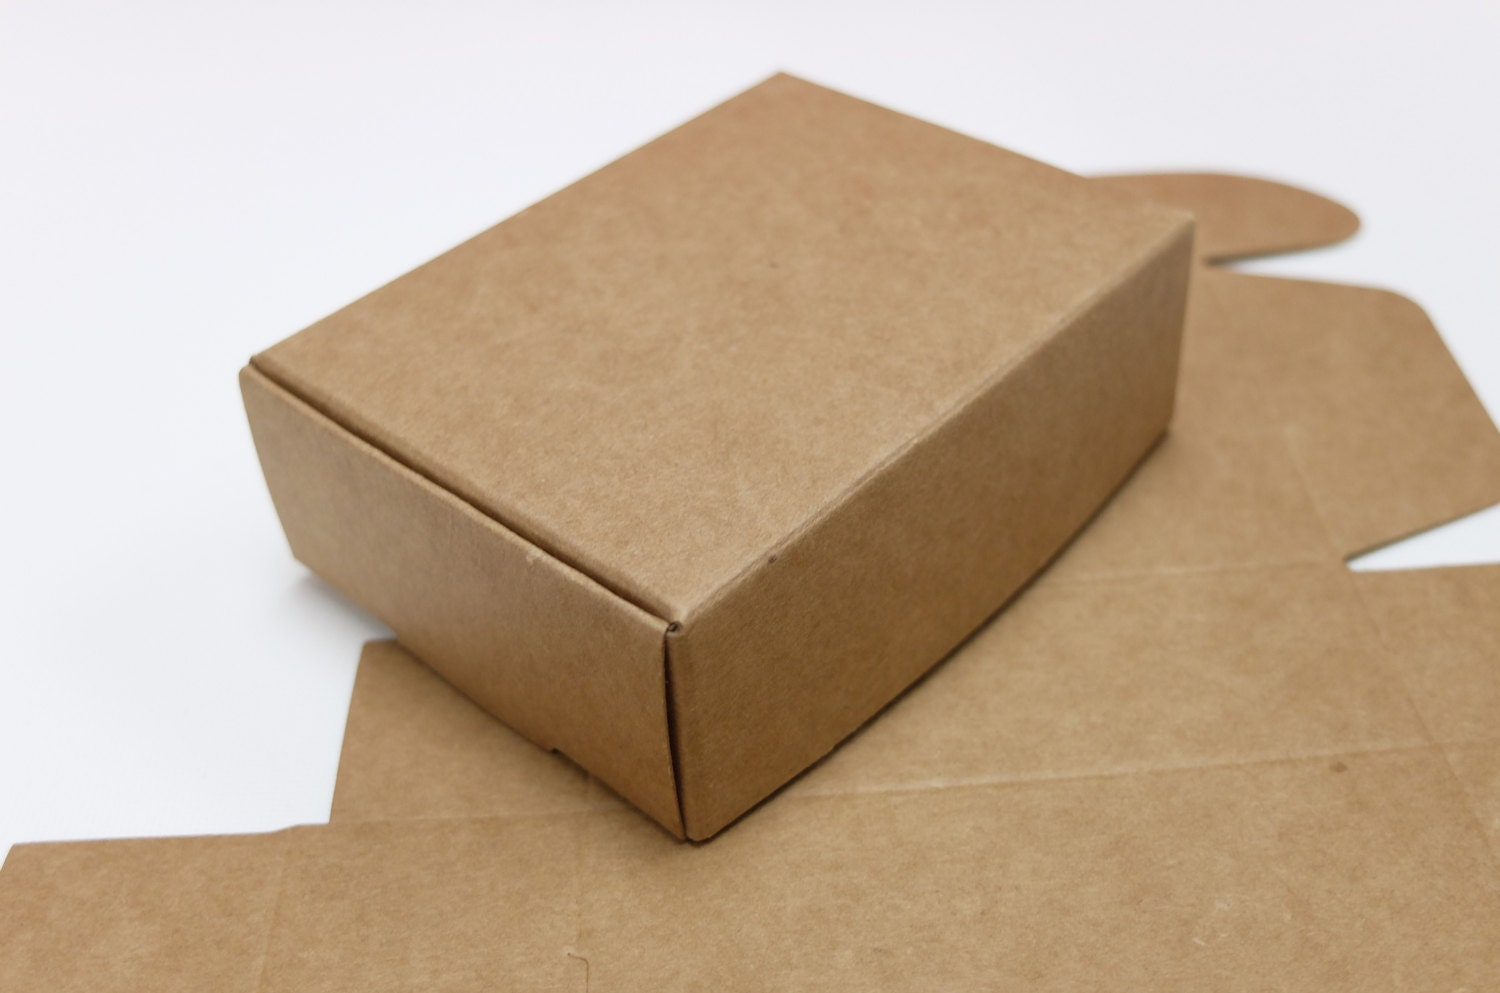 10 Ideas About Cardboard Box Cars On Pinterest: 10pcs Paper Box 3.5 X 2.5 X 1.25 Kraft Paper Box